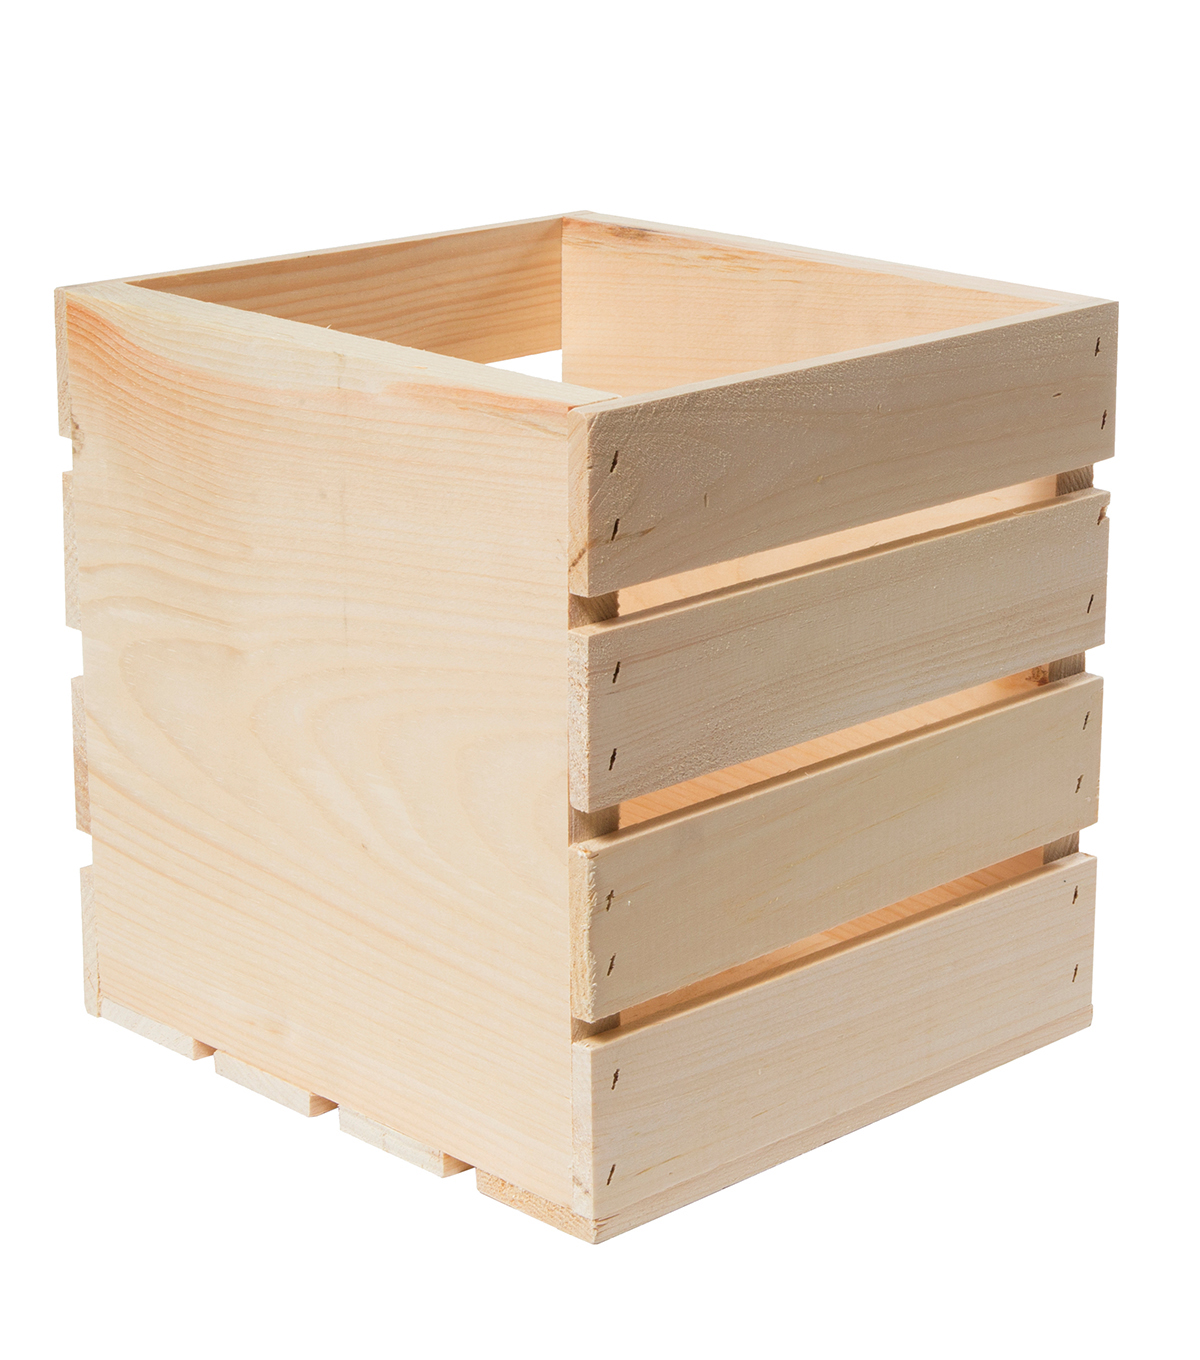 Basic Square Wood Crate